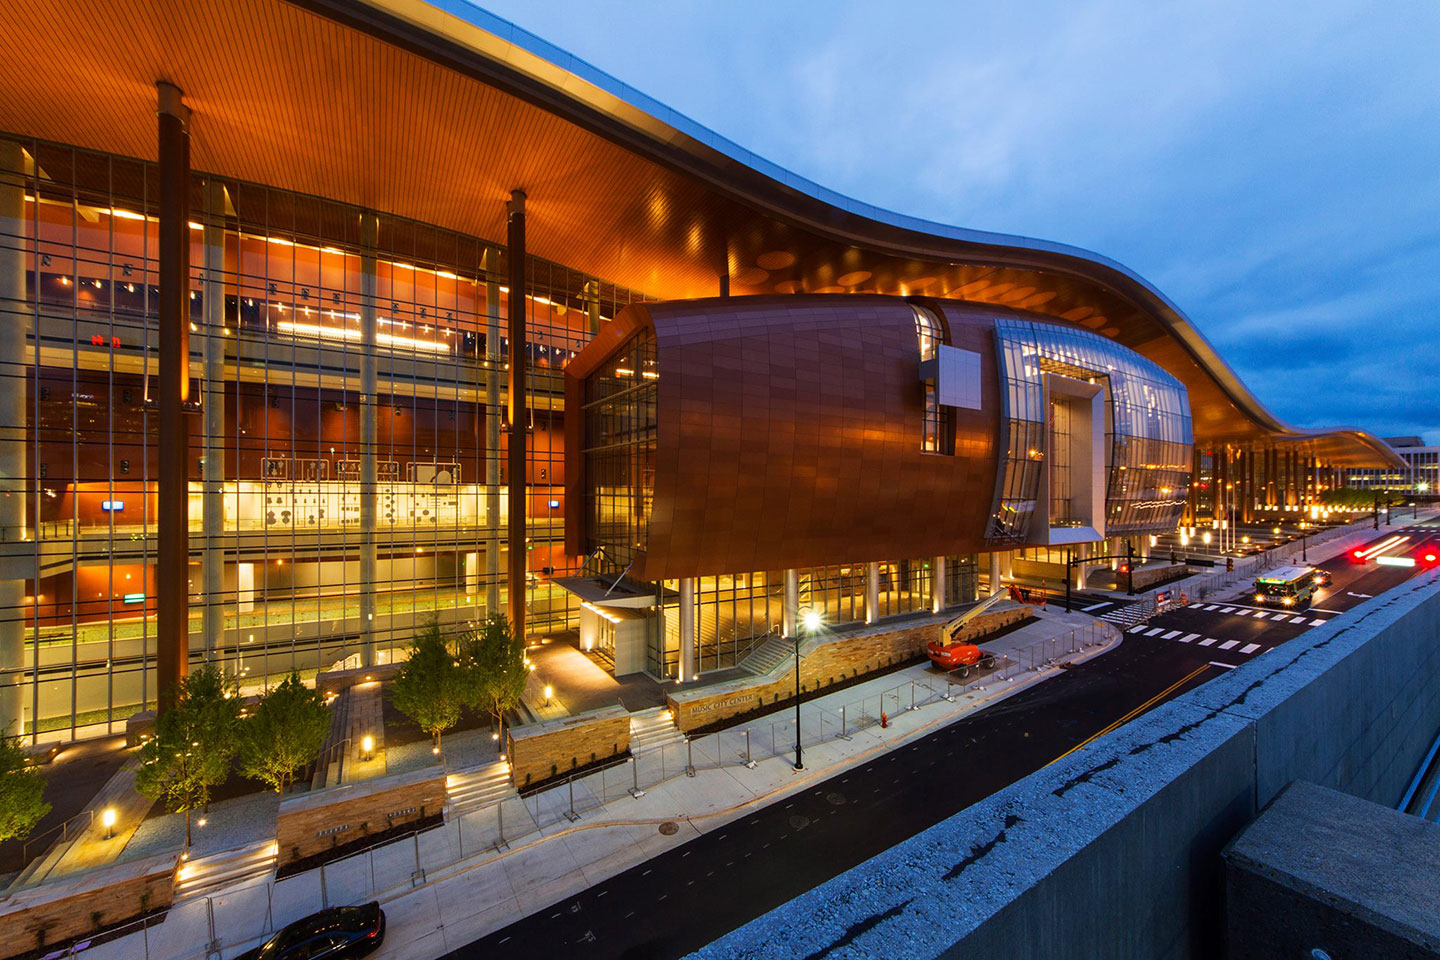 Nashville Music City Center Greenroofs Com